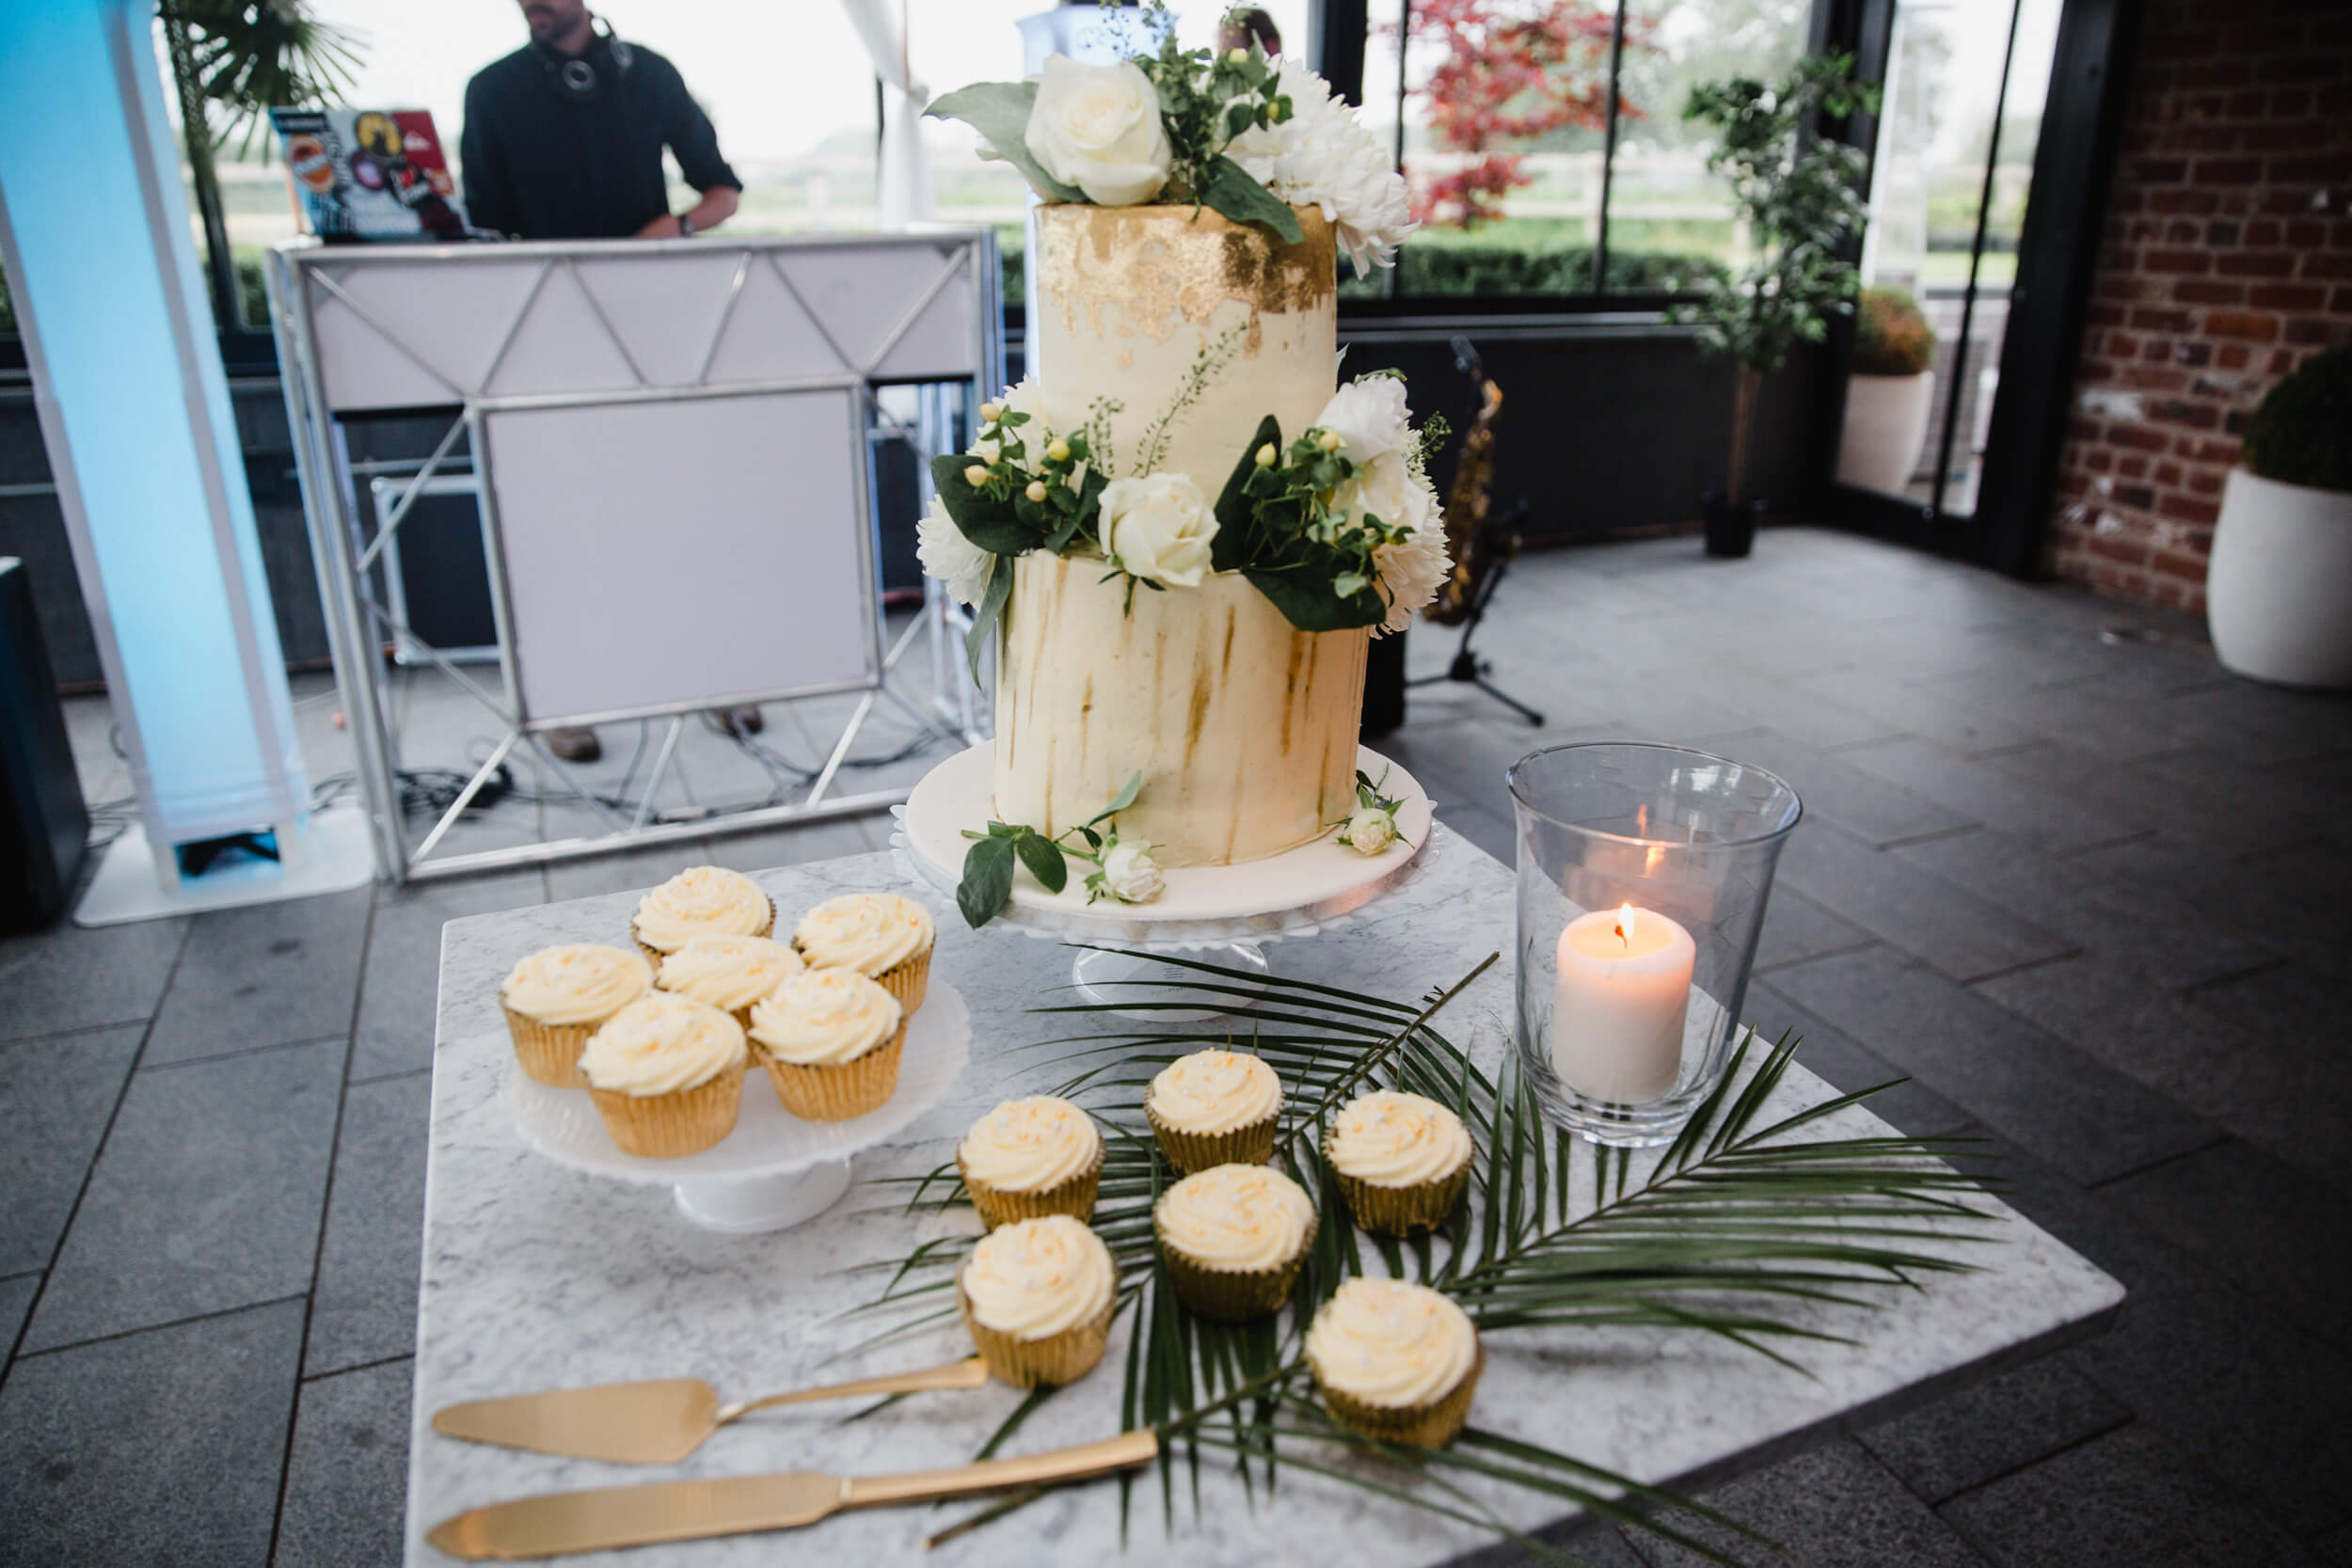 wedding cake and cupcakes dressed with bouquet flowers